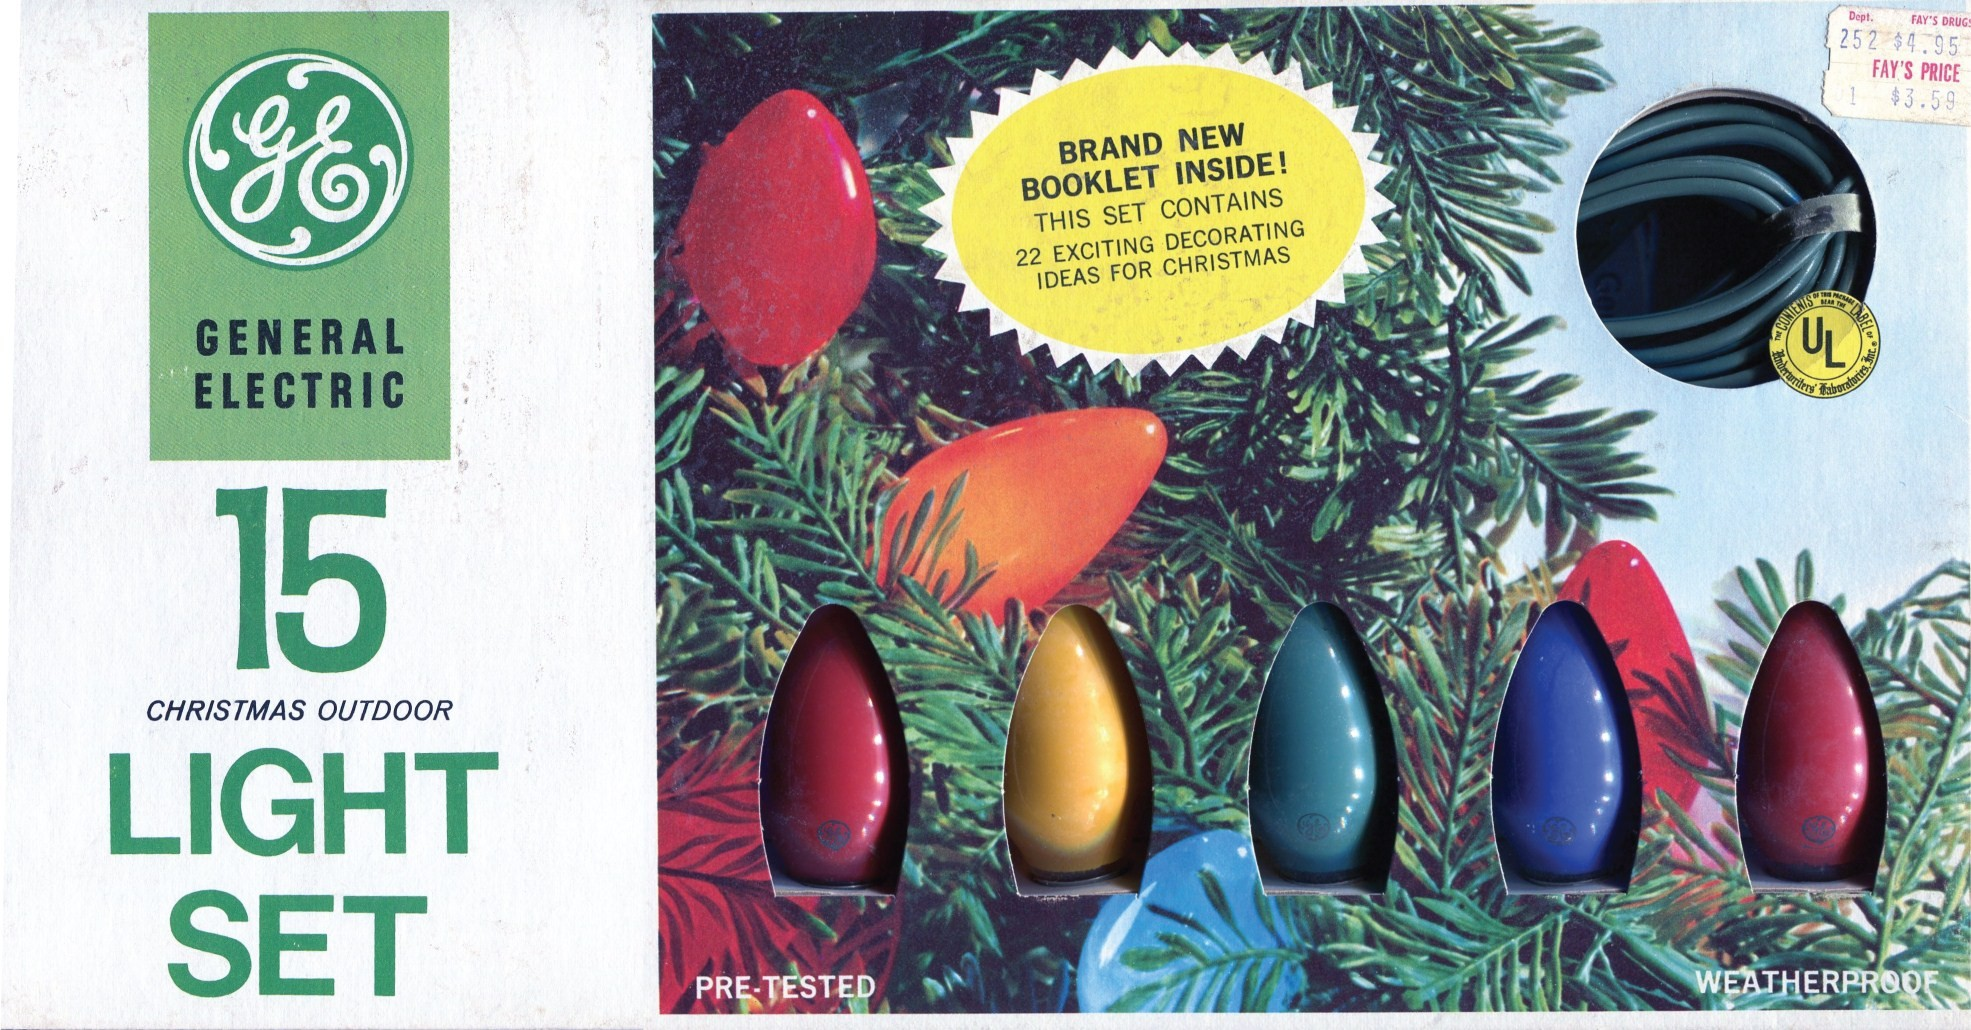 General Electric 15 Christmas Outdoor Light Set - 1971